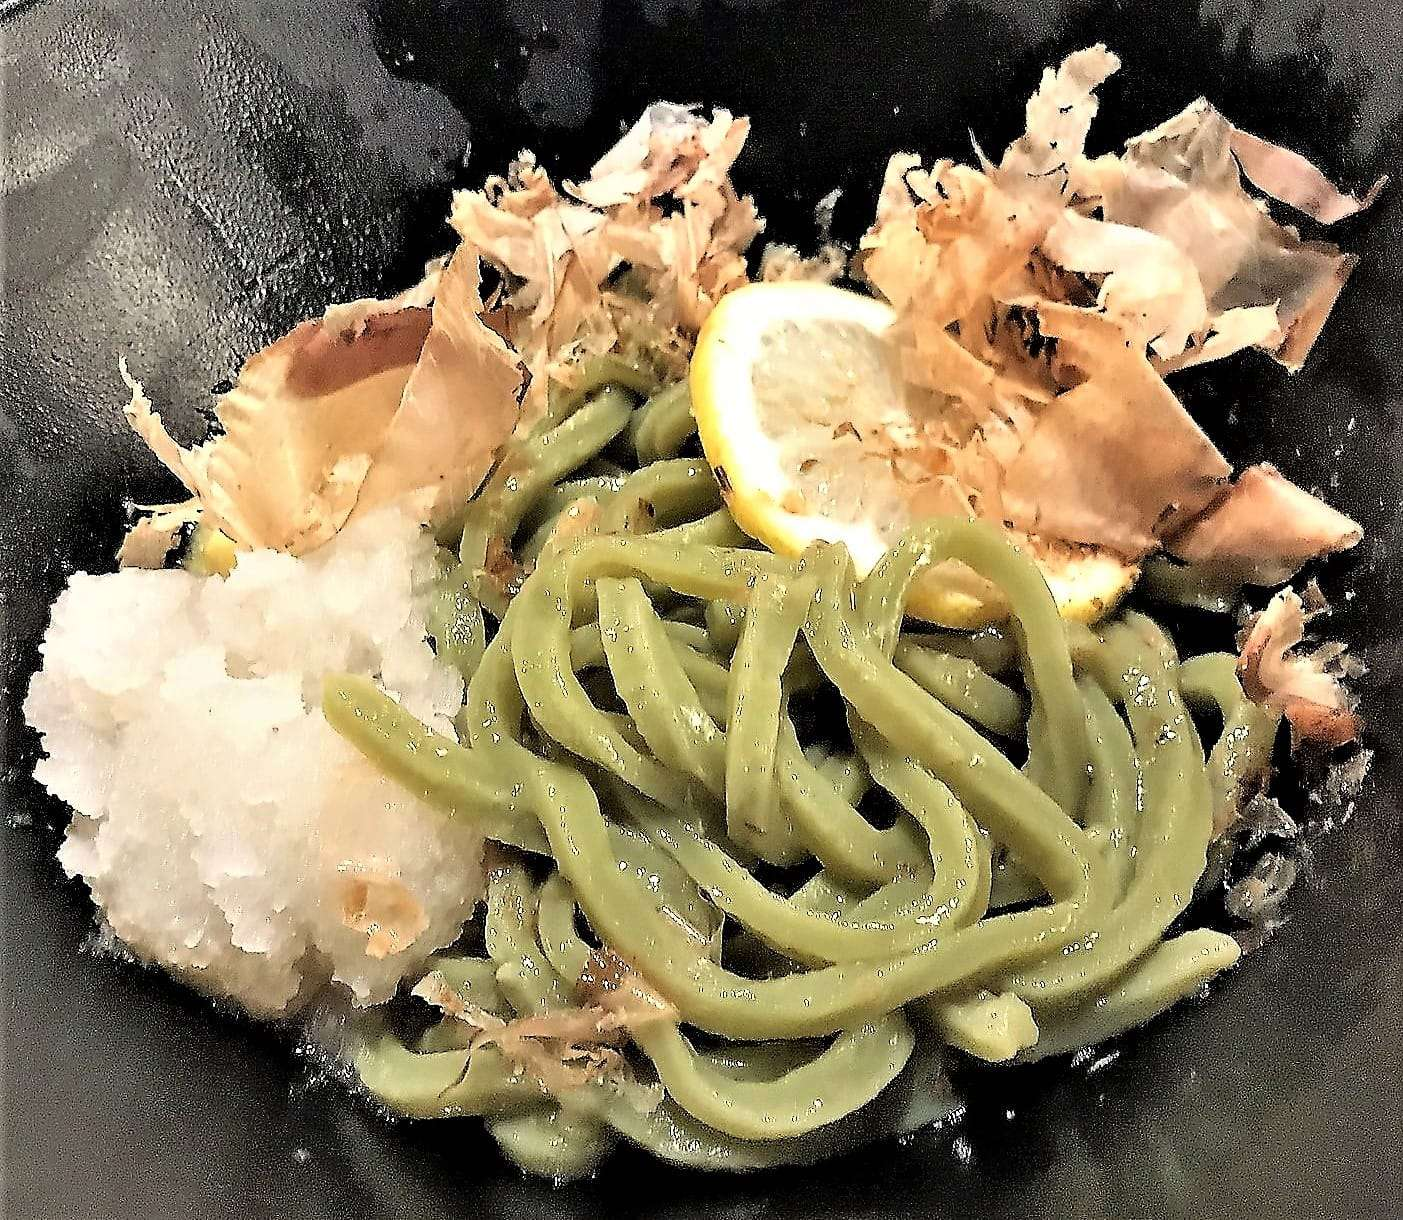 Photo of a bowl of udon soup with matcha-colored noodles